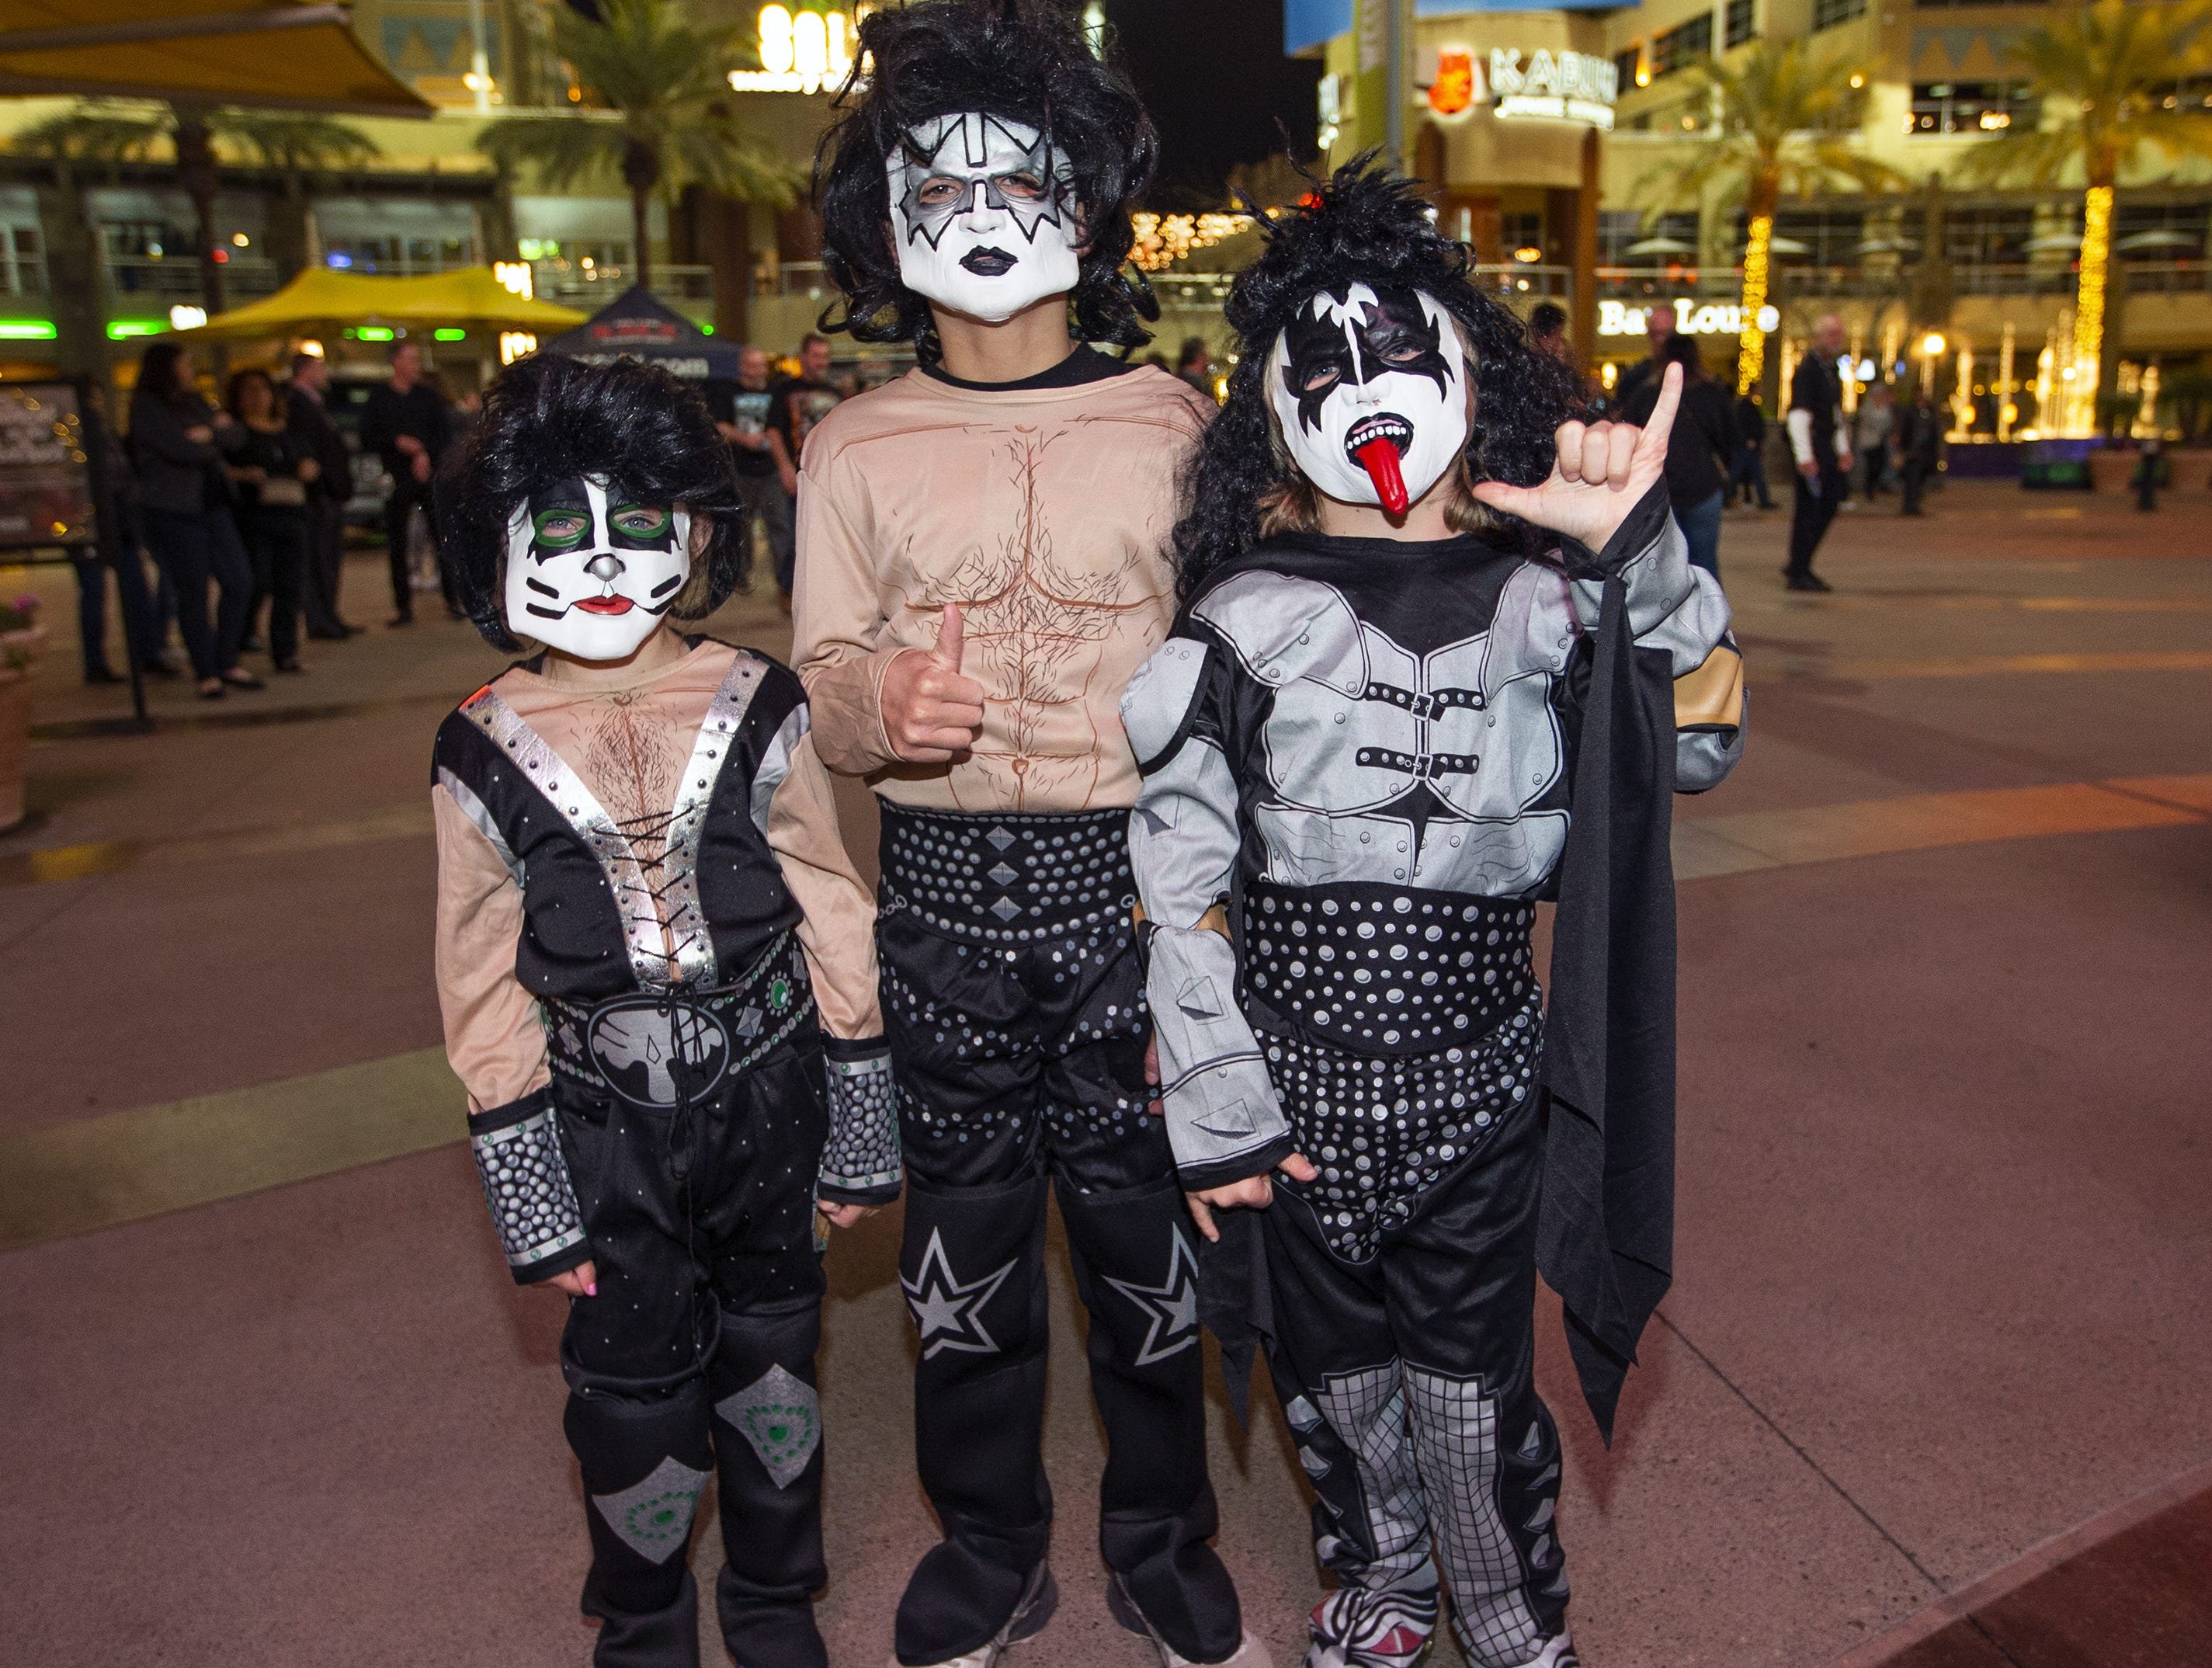 (from left to right) Cave Creek siblings Avery Hamilton, 5; Torin, 10; and Brock, 7, show off their best KISS makeup prior to the concert by the famed group at Gila River Arena in Glendale on Wednesday, Feb. 13, 2019.  The concert was part of the End of the Road World Tour, the band's farewell to the fans.